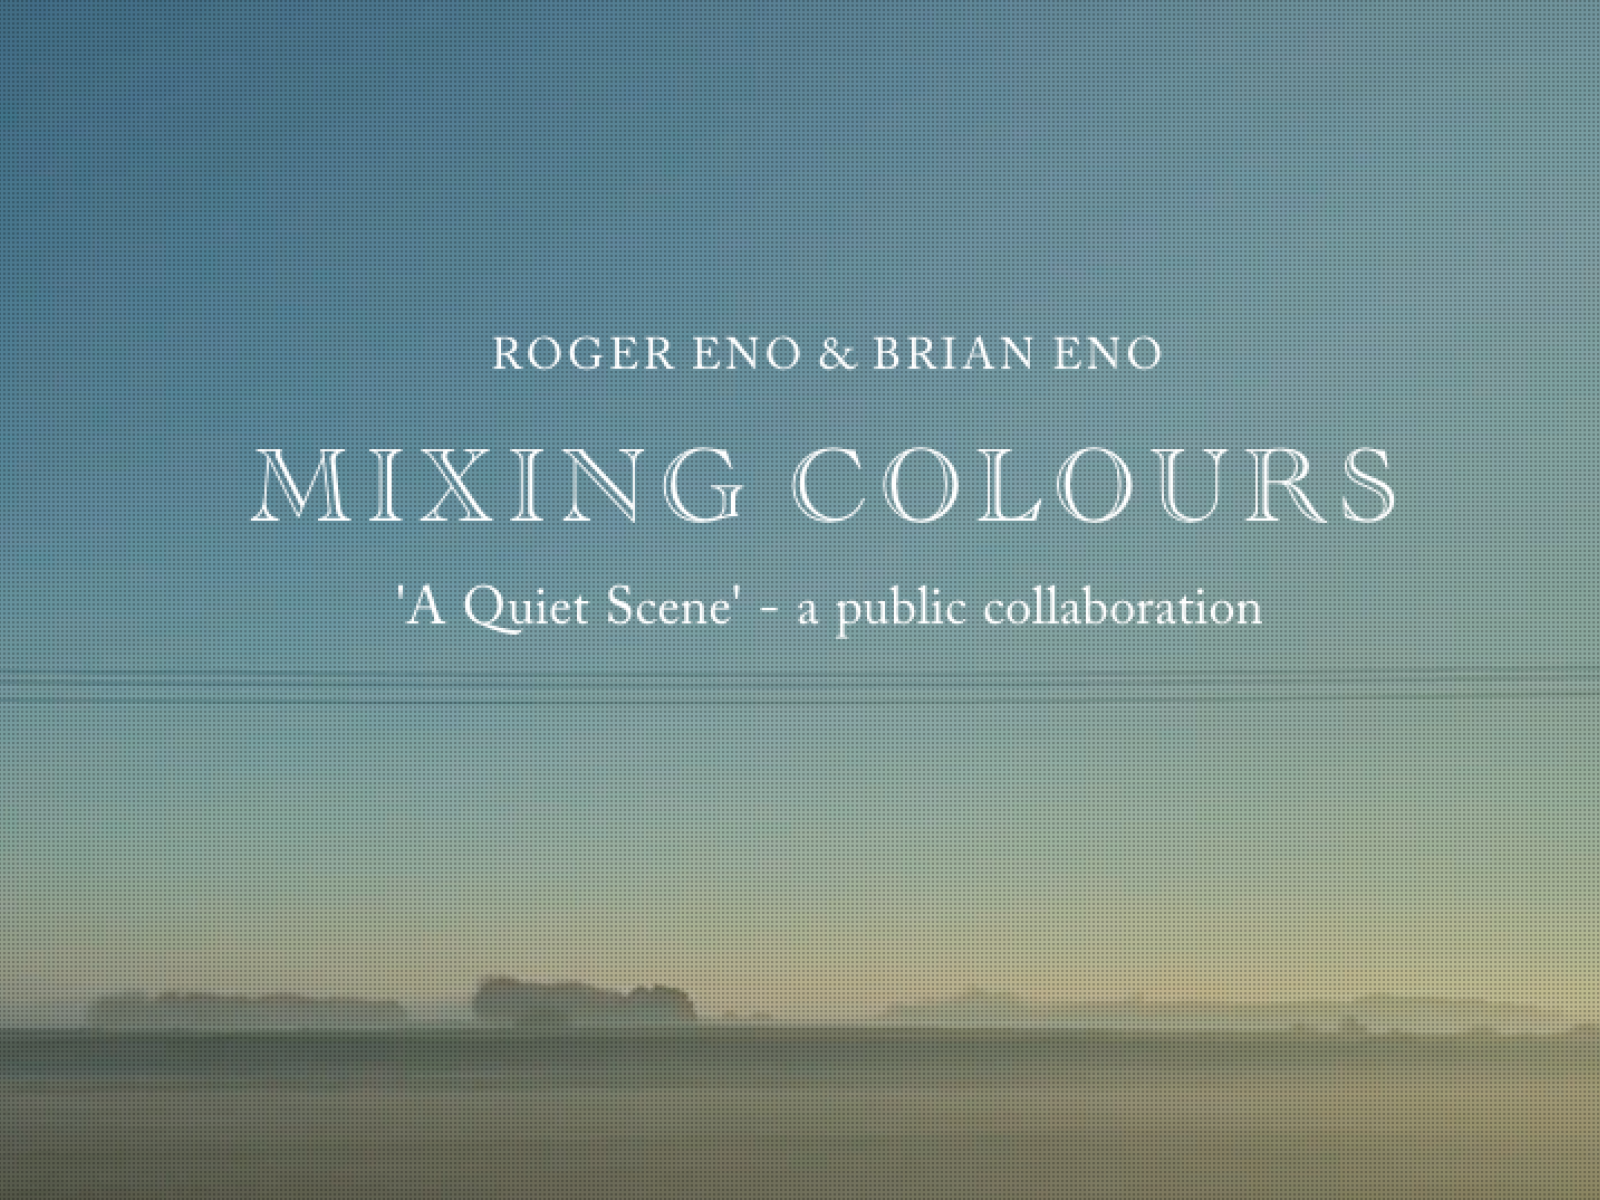 Main image for event titled OUTDOOR ART INSTALLATION OF WINNING ENTRIES FROM BRIAN AND ROGER ENOS' A QUIET SCENE GLOBAL VIDEO COLLABORATION (OPENING DAY)